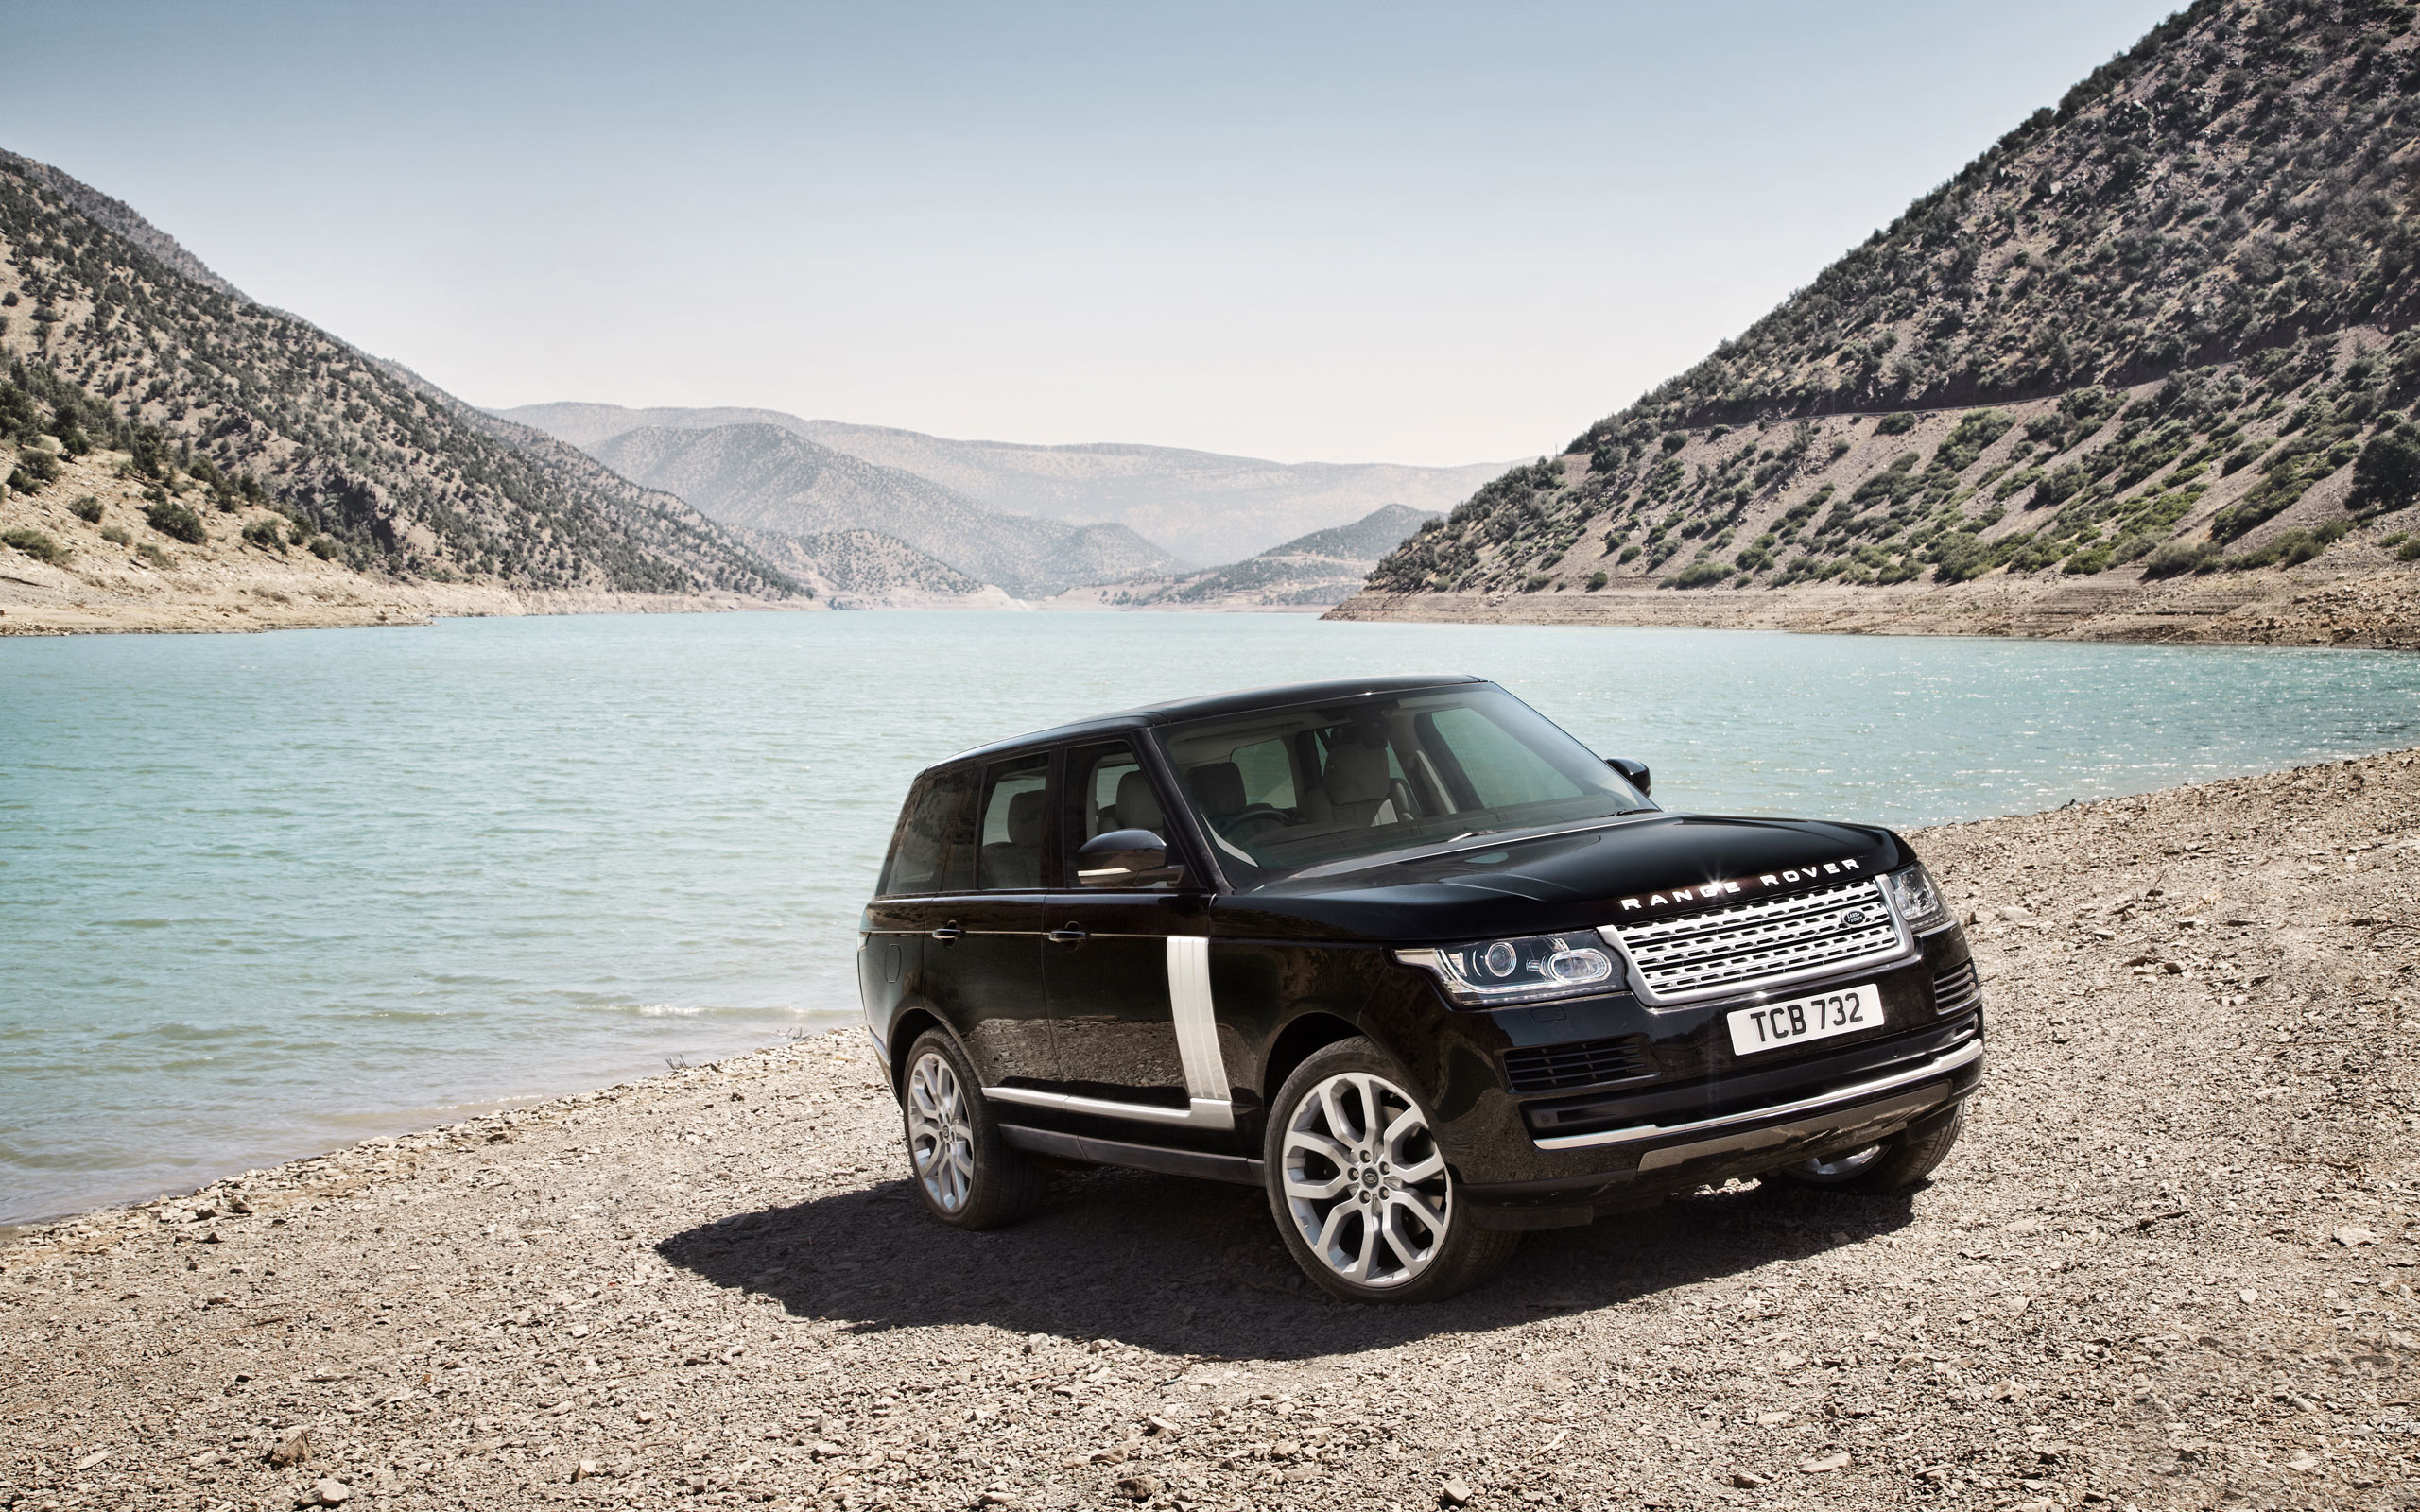 2560x1600 - Range Rover Wallpapers 29